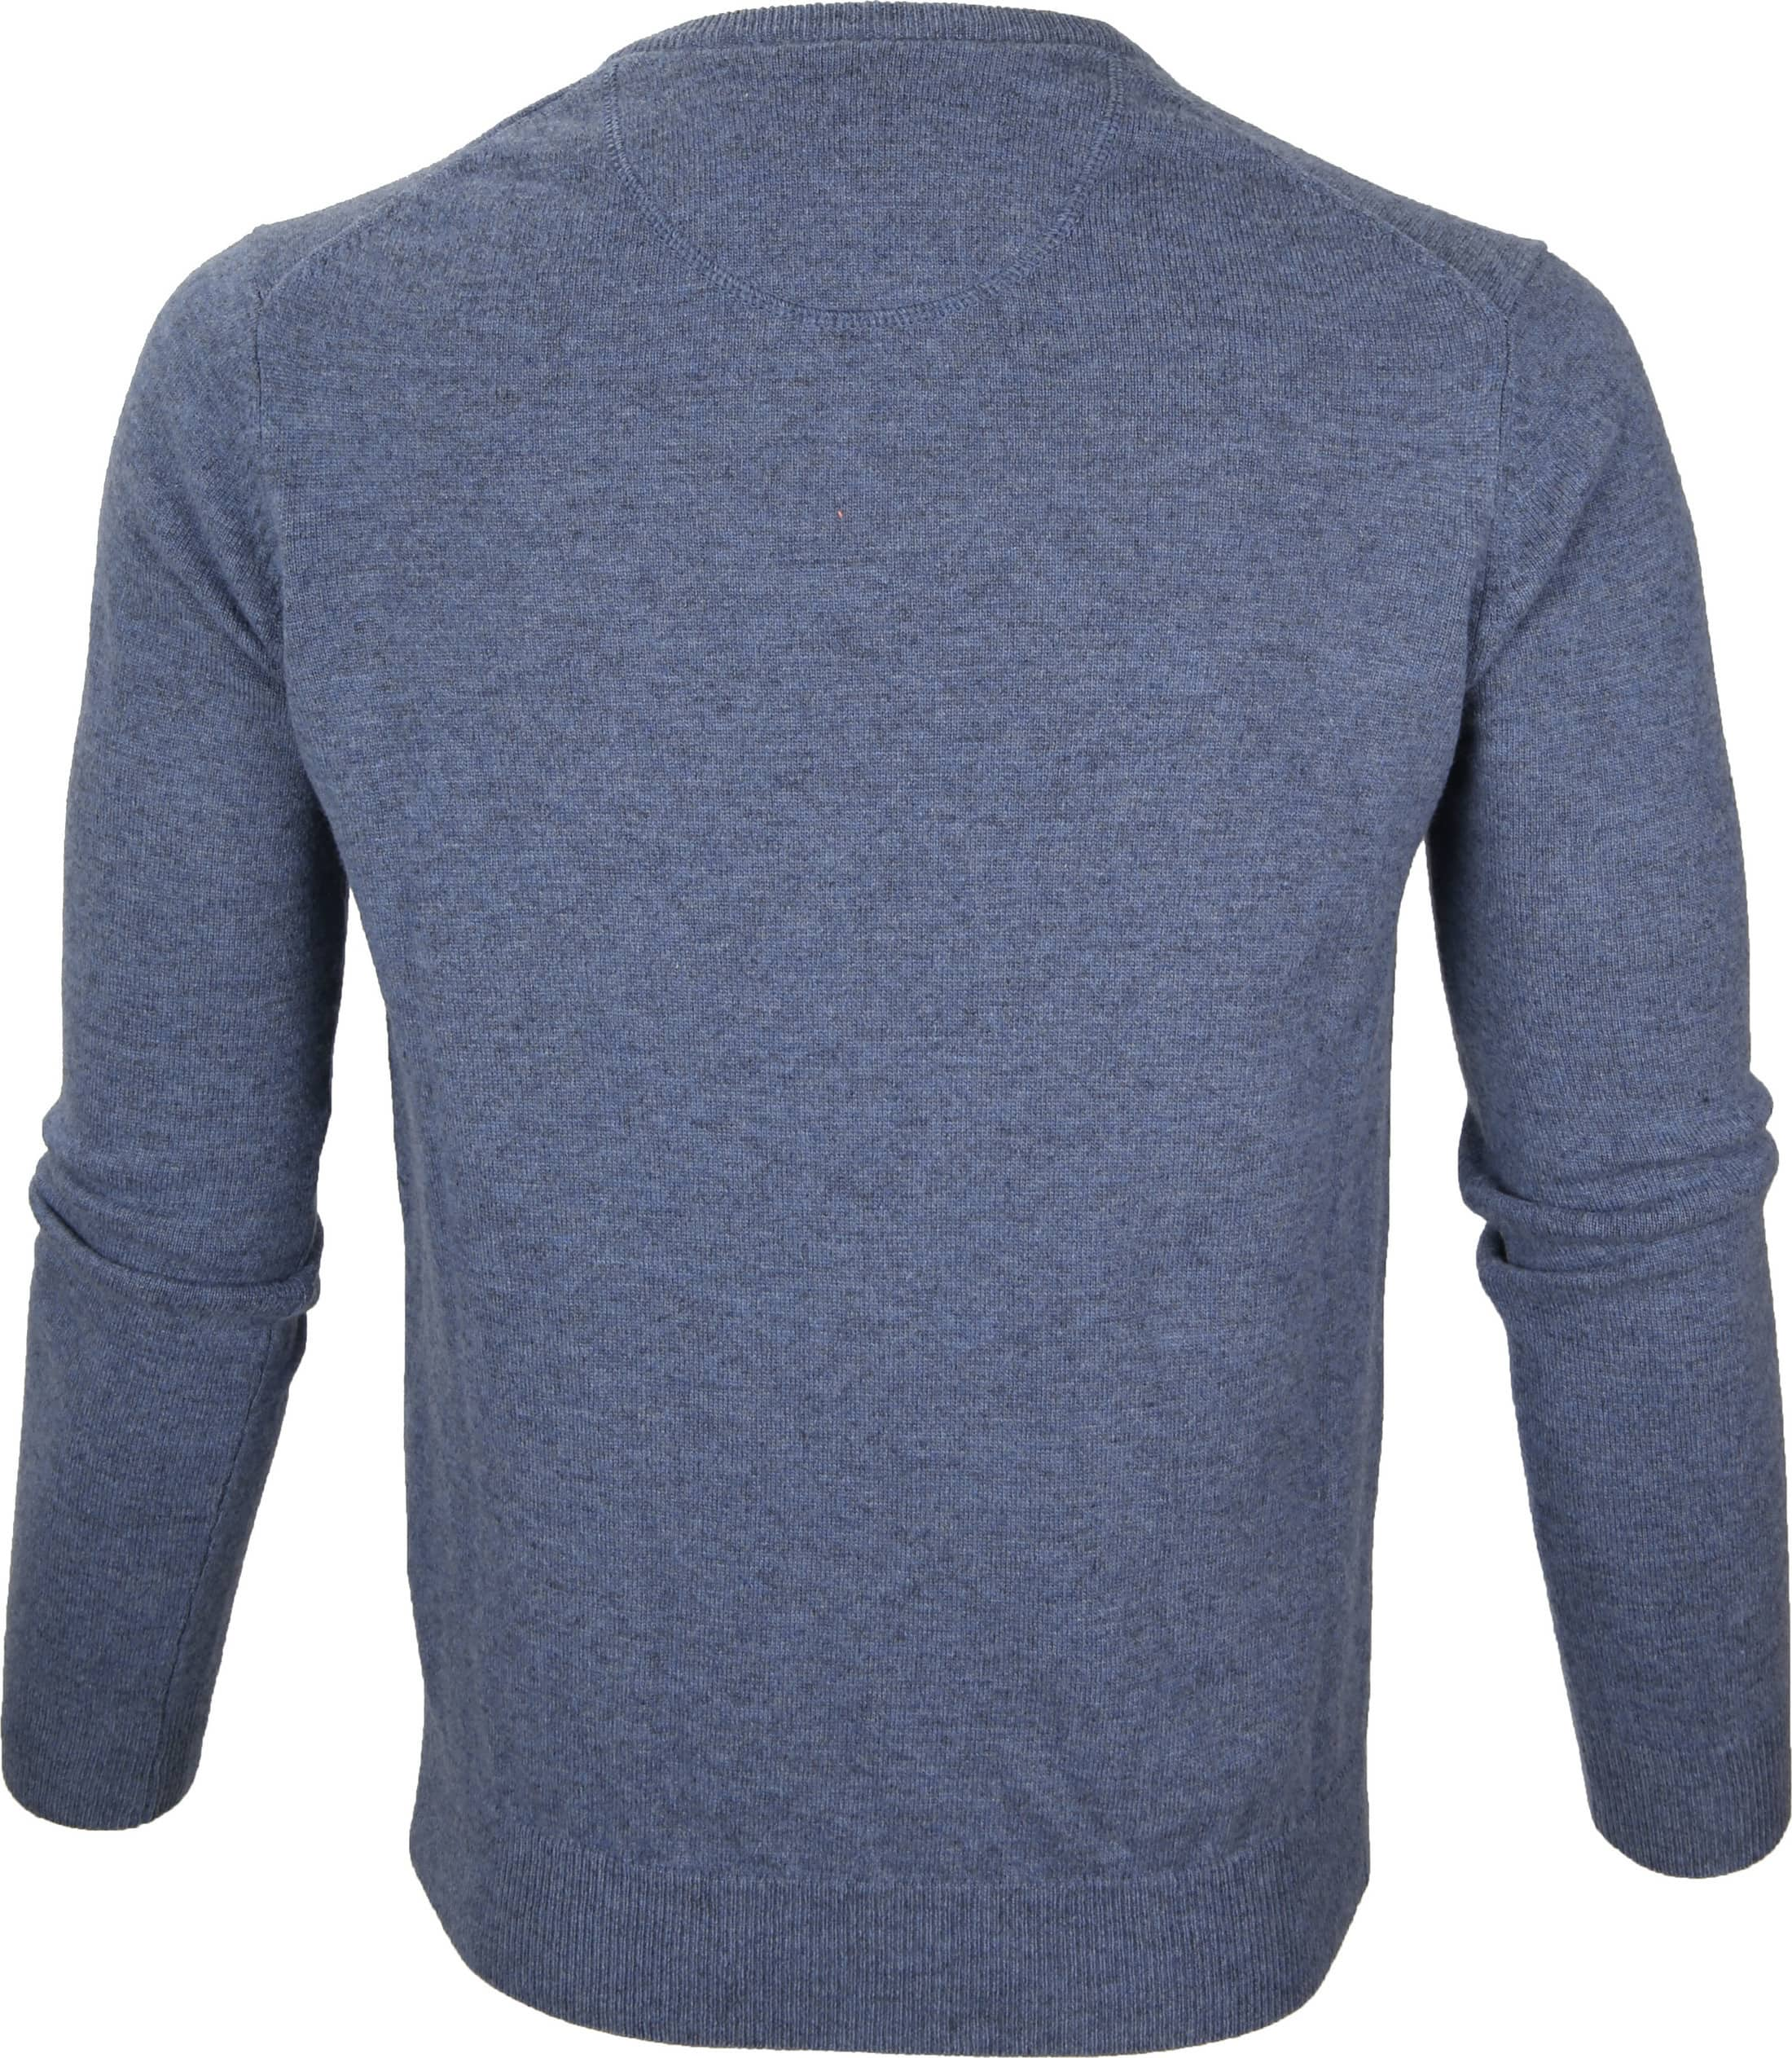 Suitable Pullover Lambswool V-Neck Light Blue foto 2